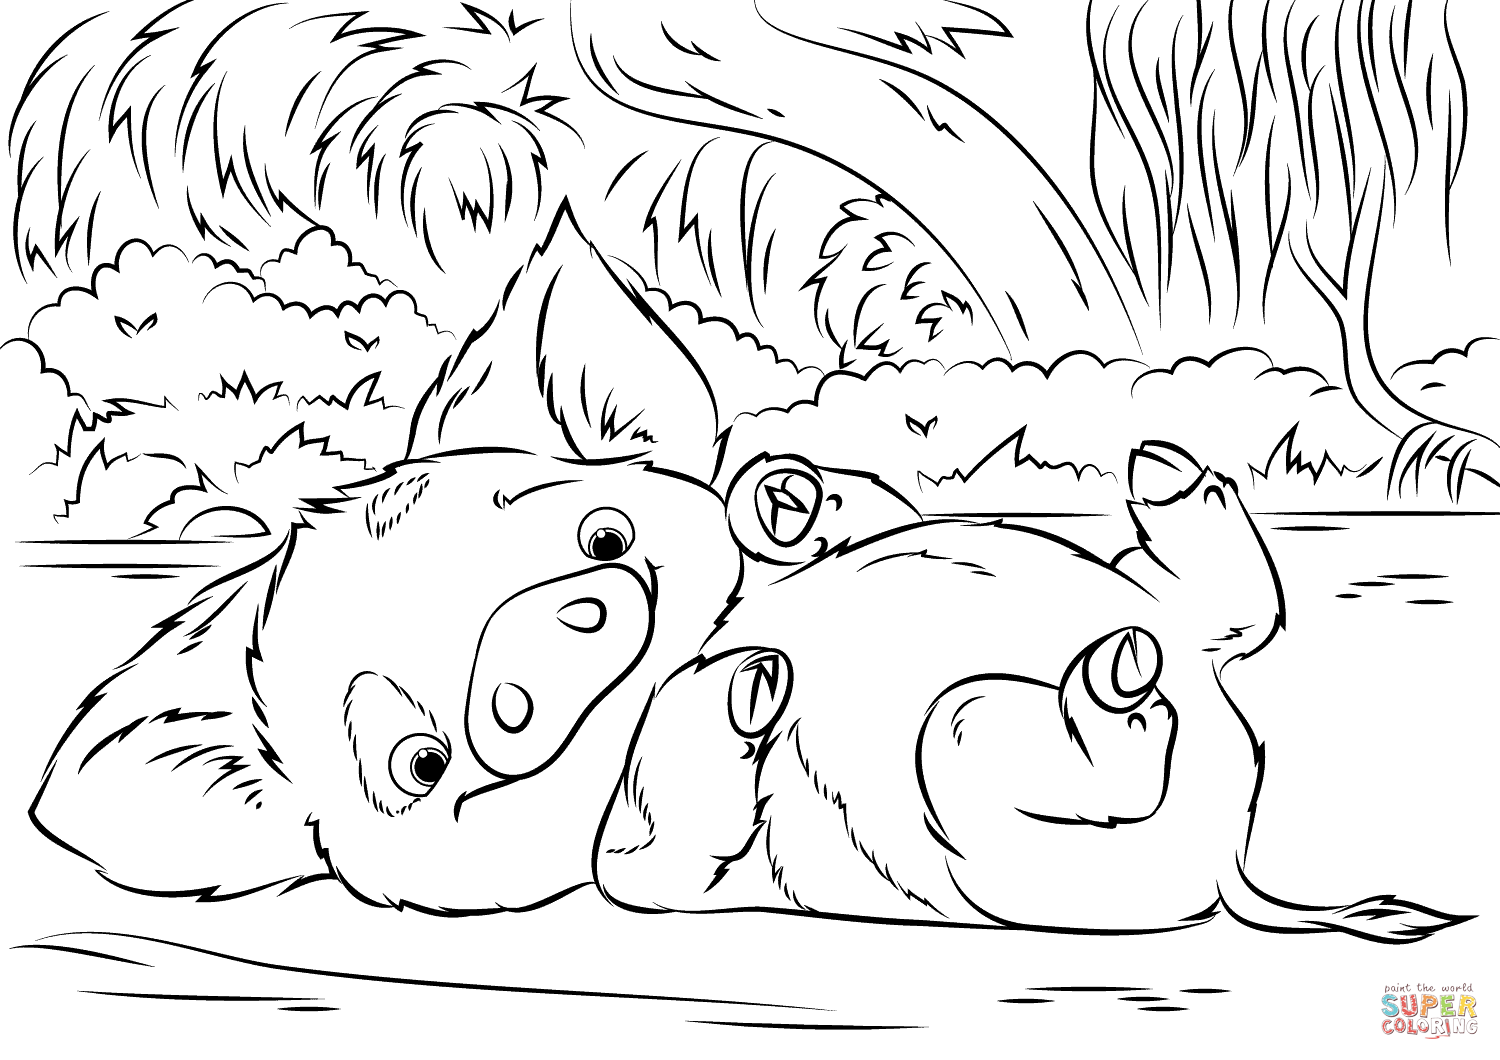 Pua Pet Pig from Moana coloring page | Free Printable Coloring Pages ...